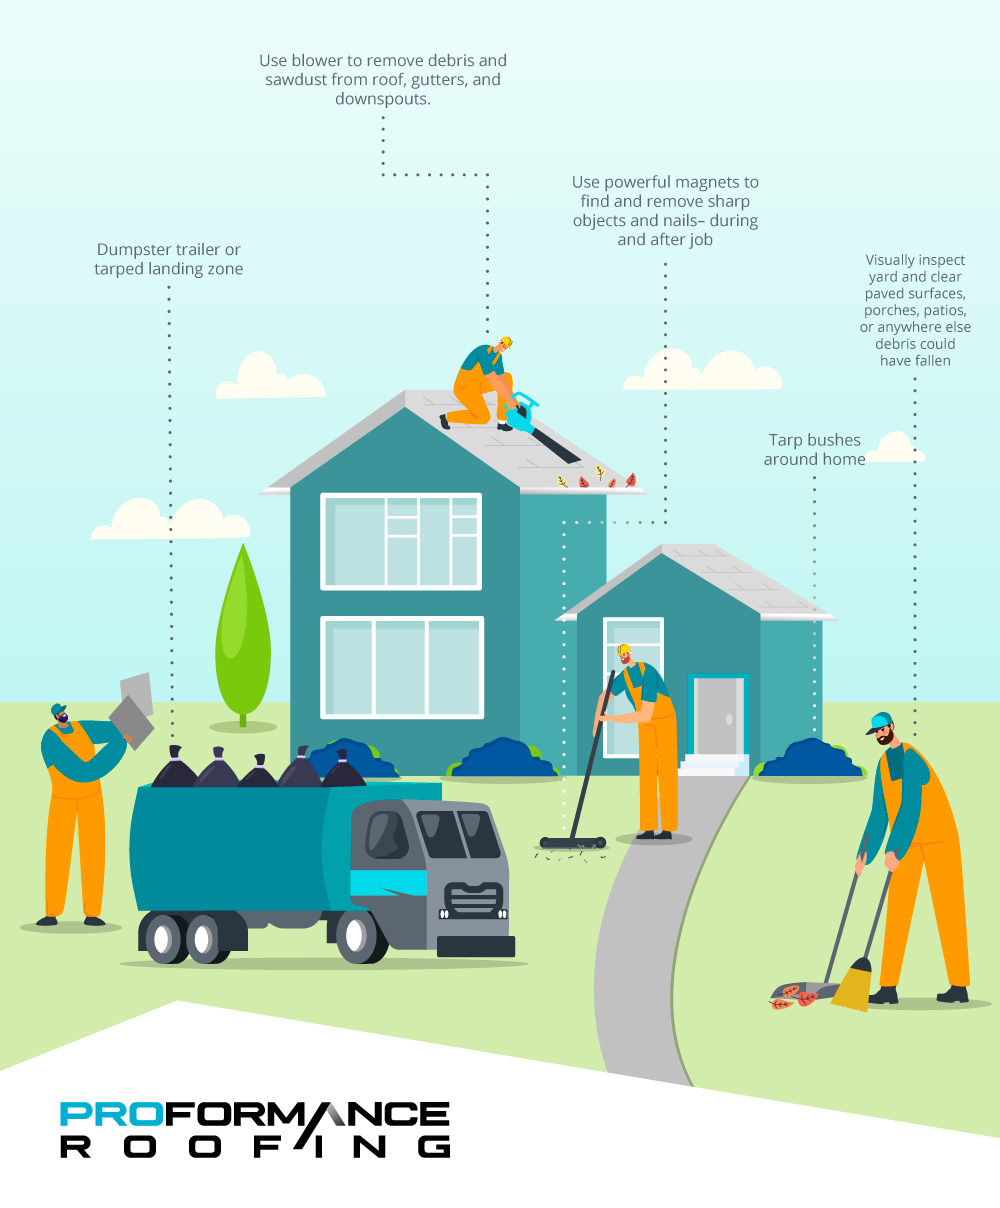 Keep your yard clean after roofing